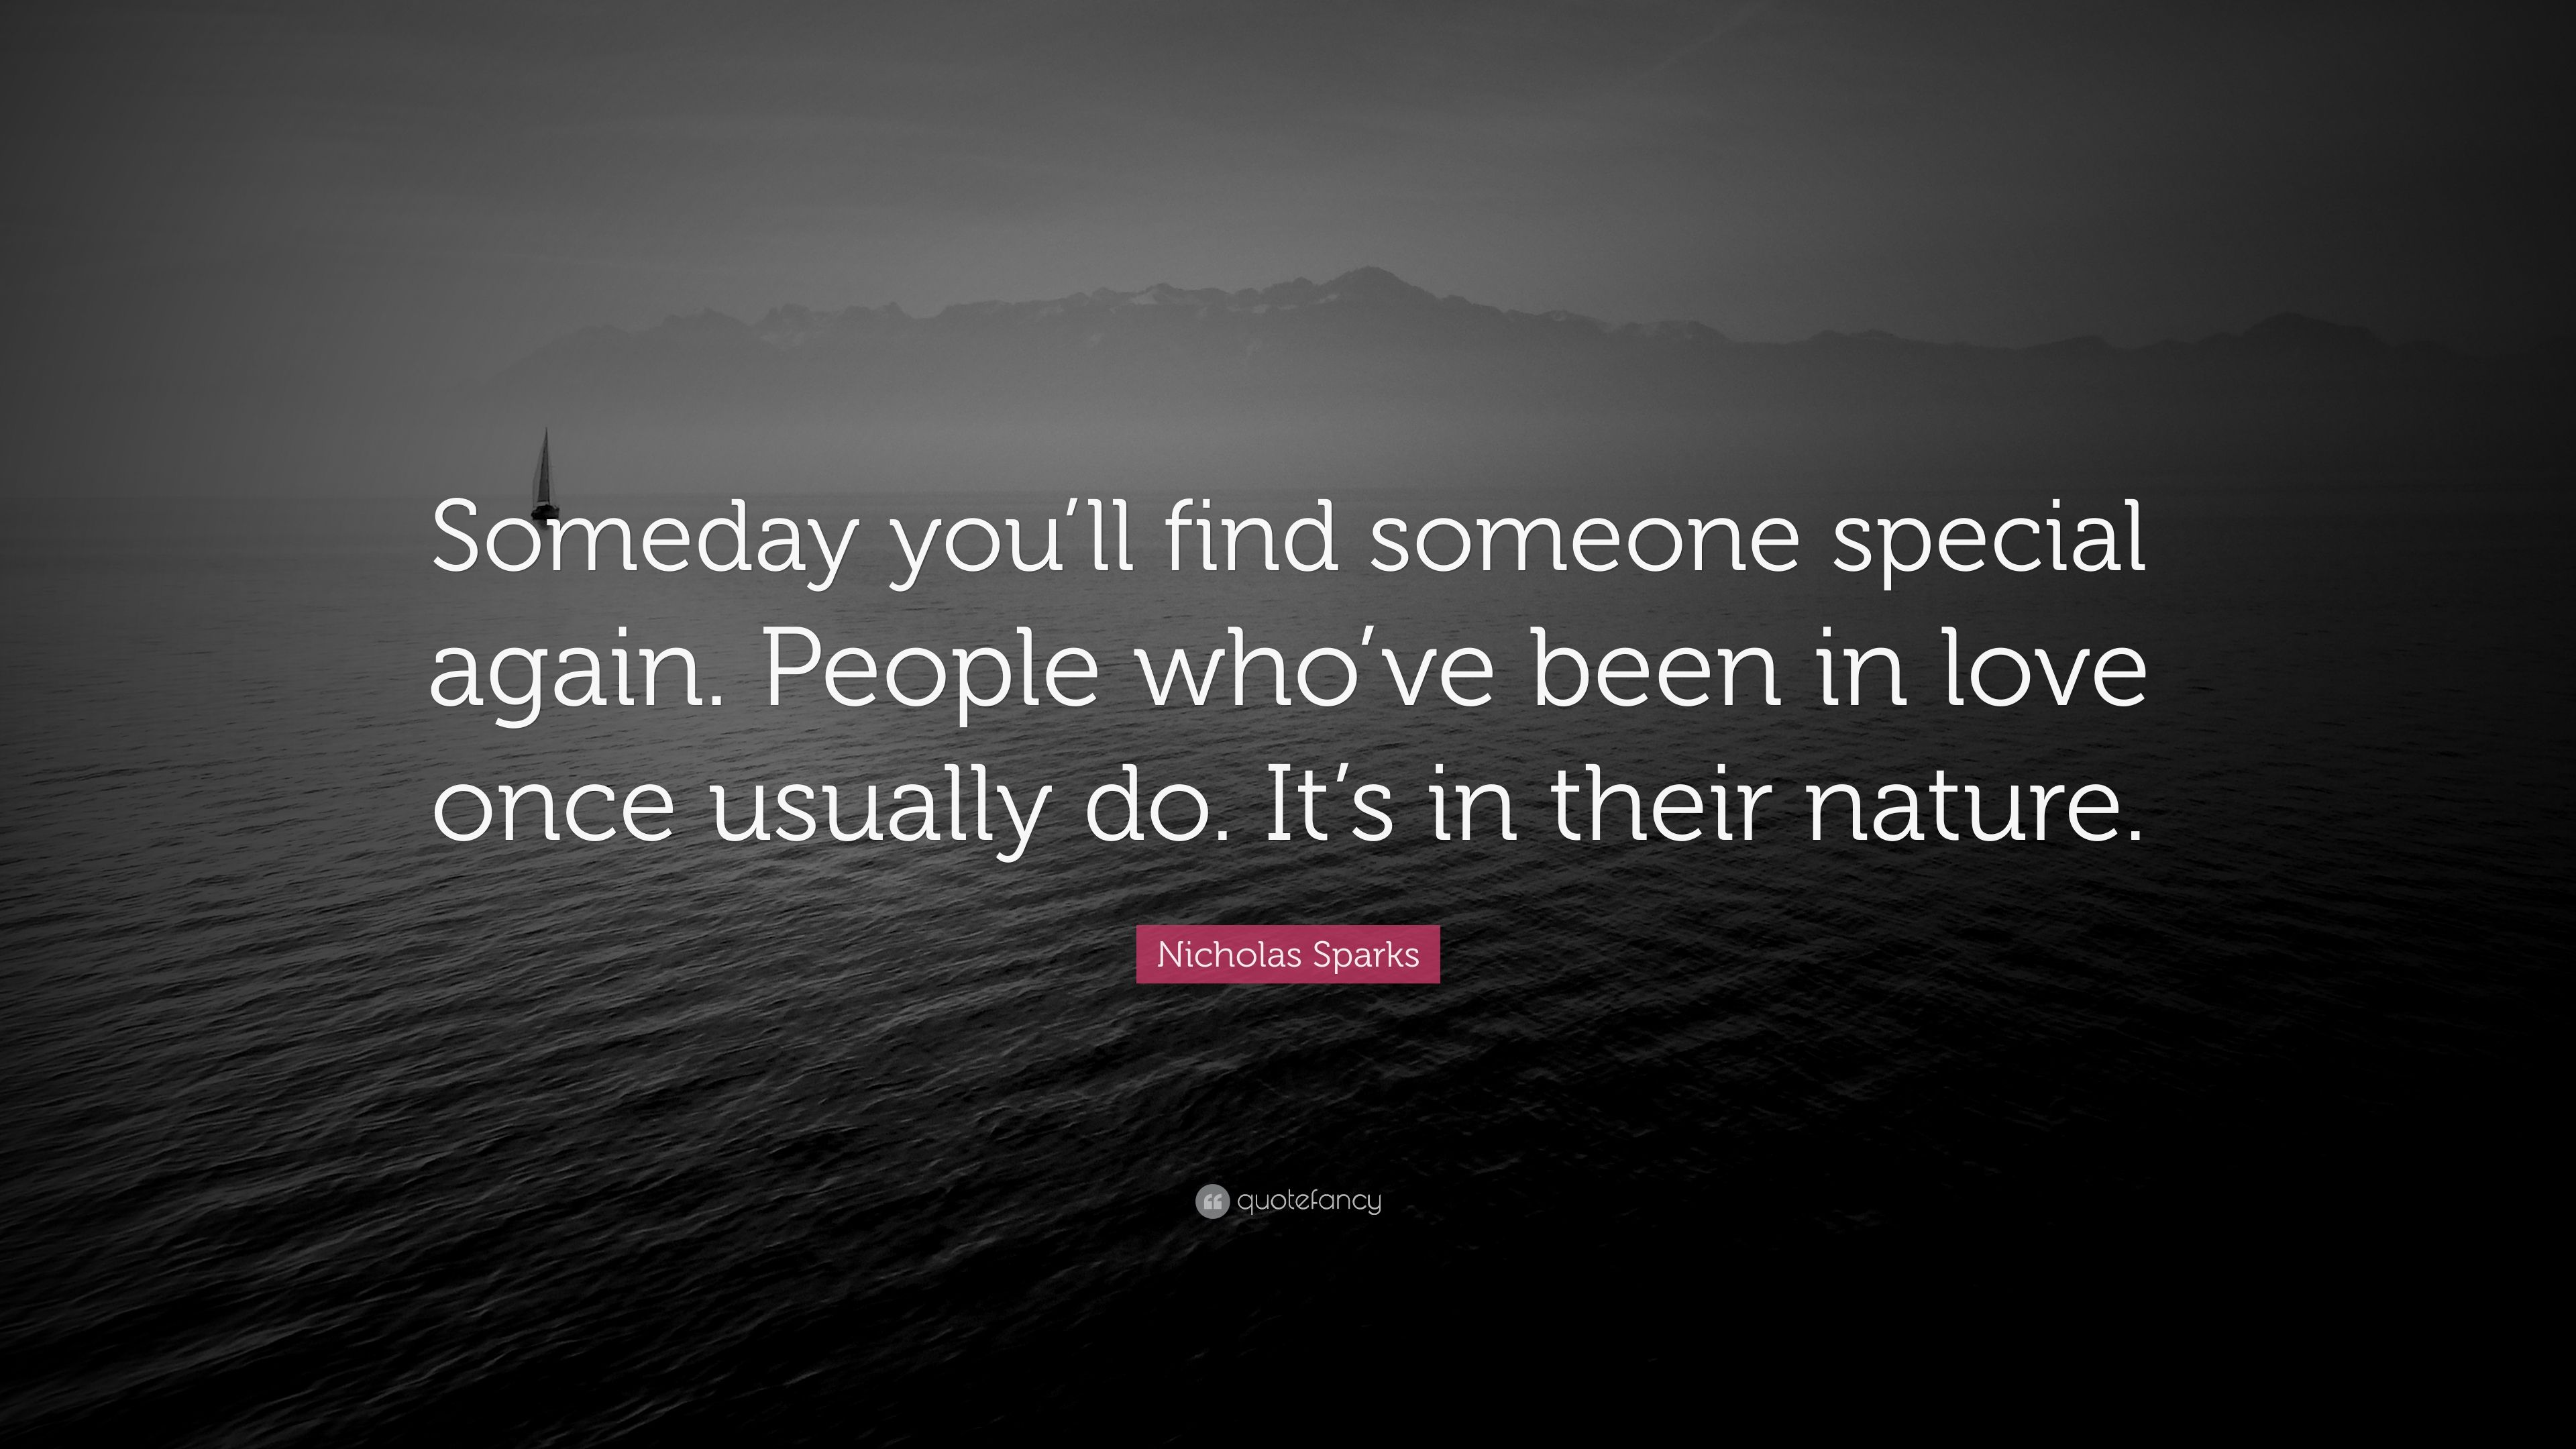 Quote By Nicholas Sparks Someday Youll Find Someone Special Again